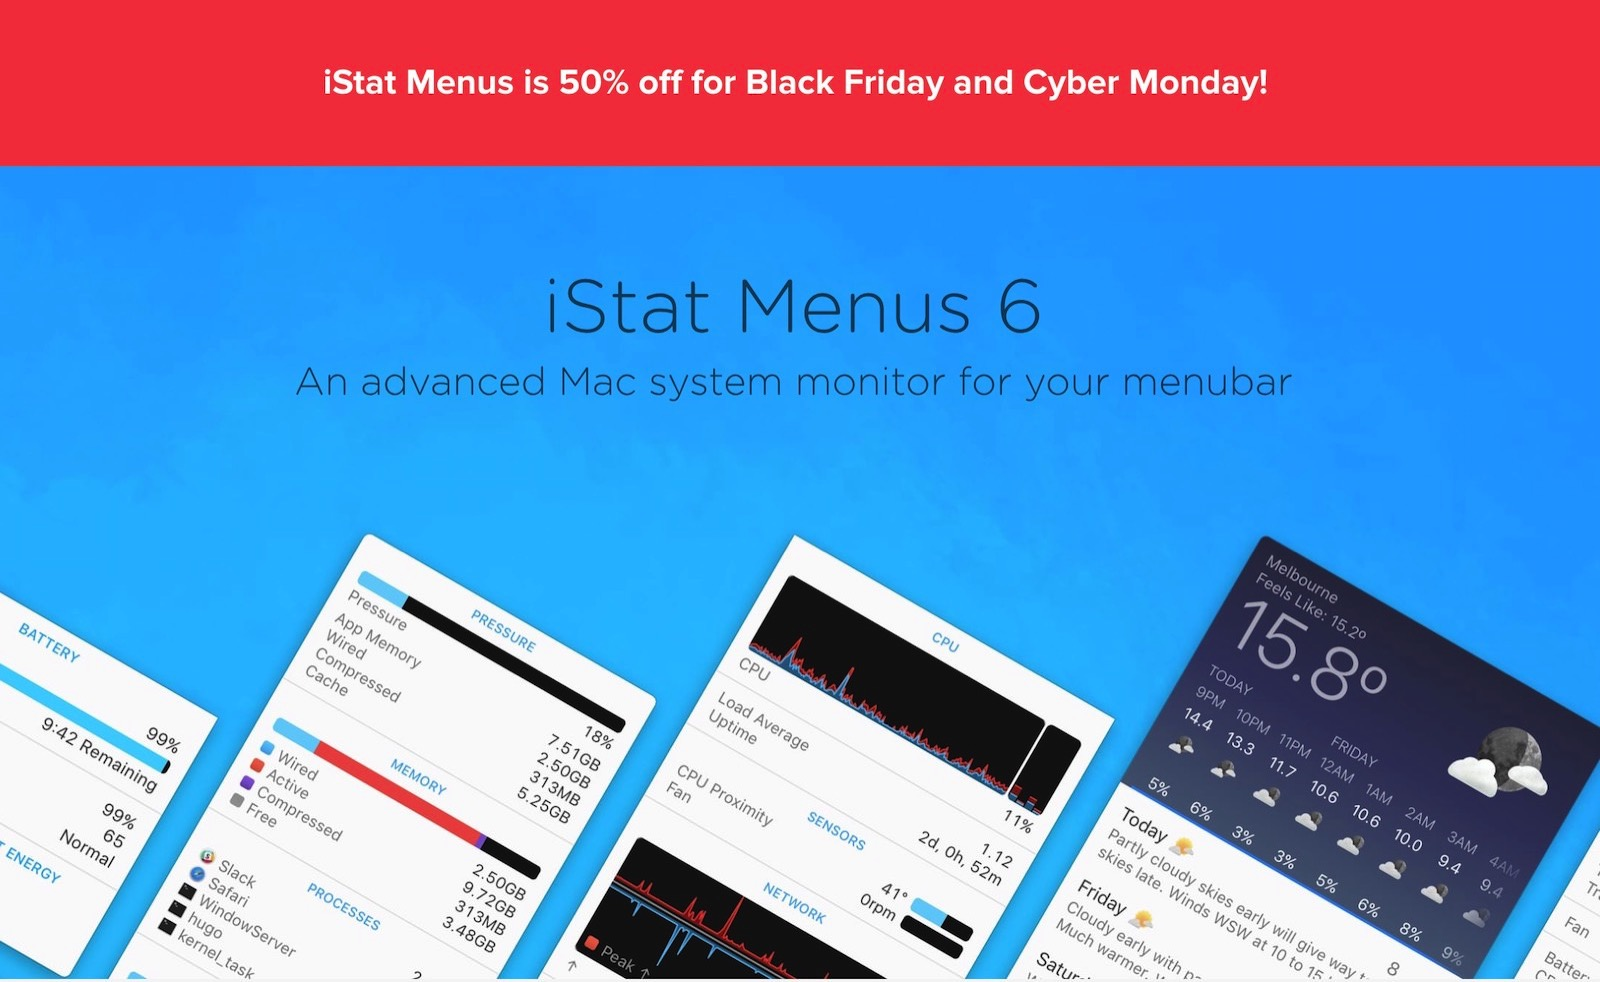 Istat menus blackfriday sale